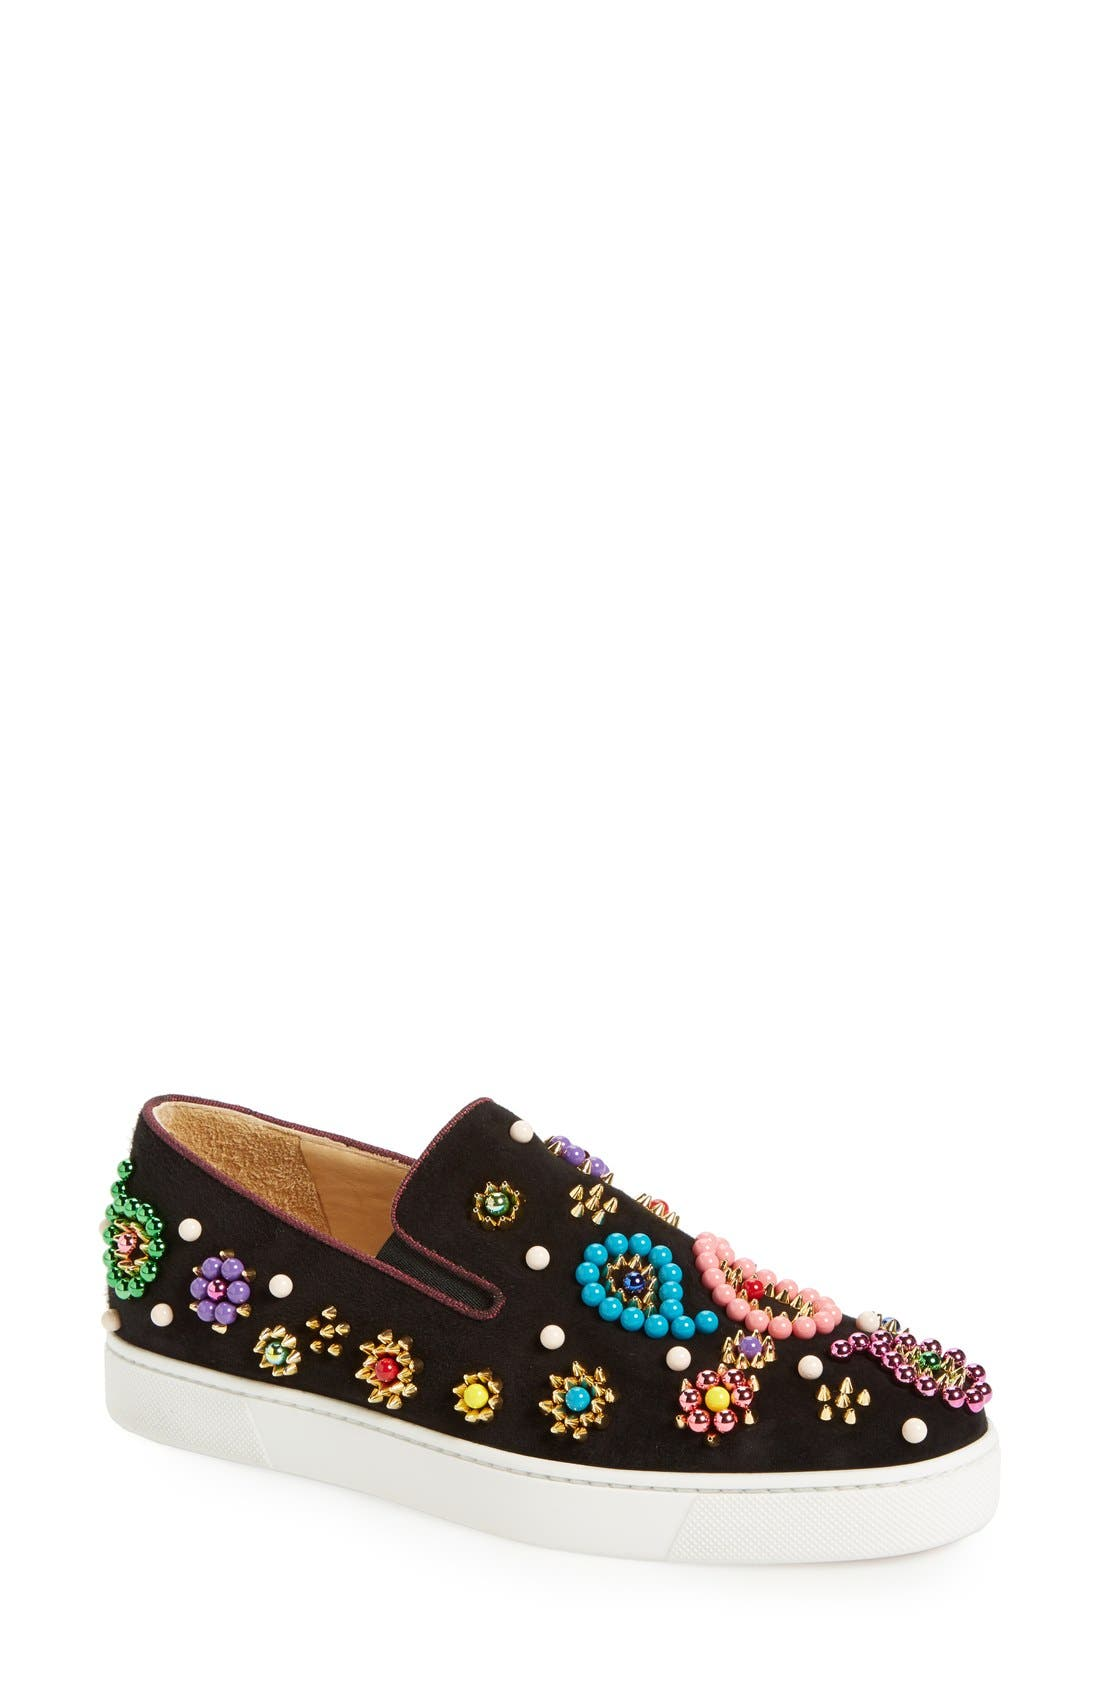 CHRISTIAN LOUBOUTIN,                             'Boat Candy' Slip-On Sneaker,                             Main thumbnail 1, color,                             001